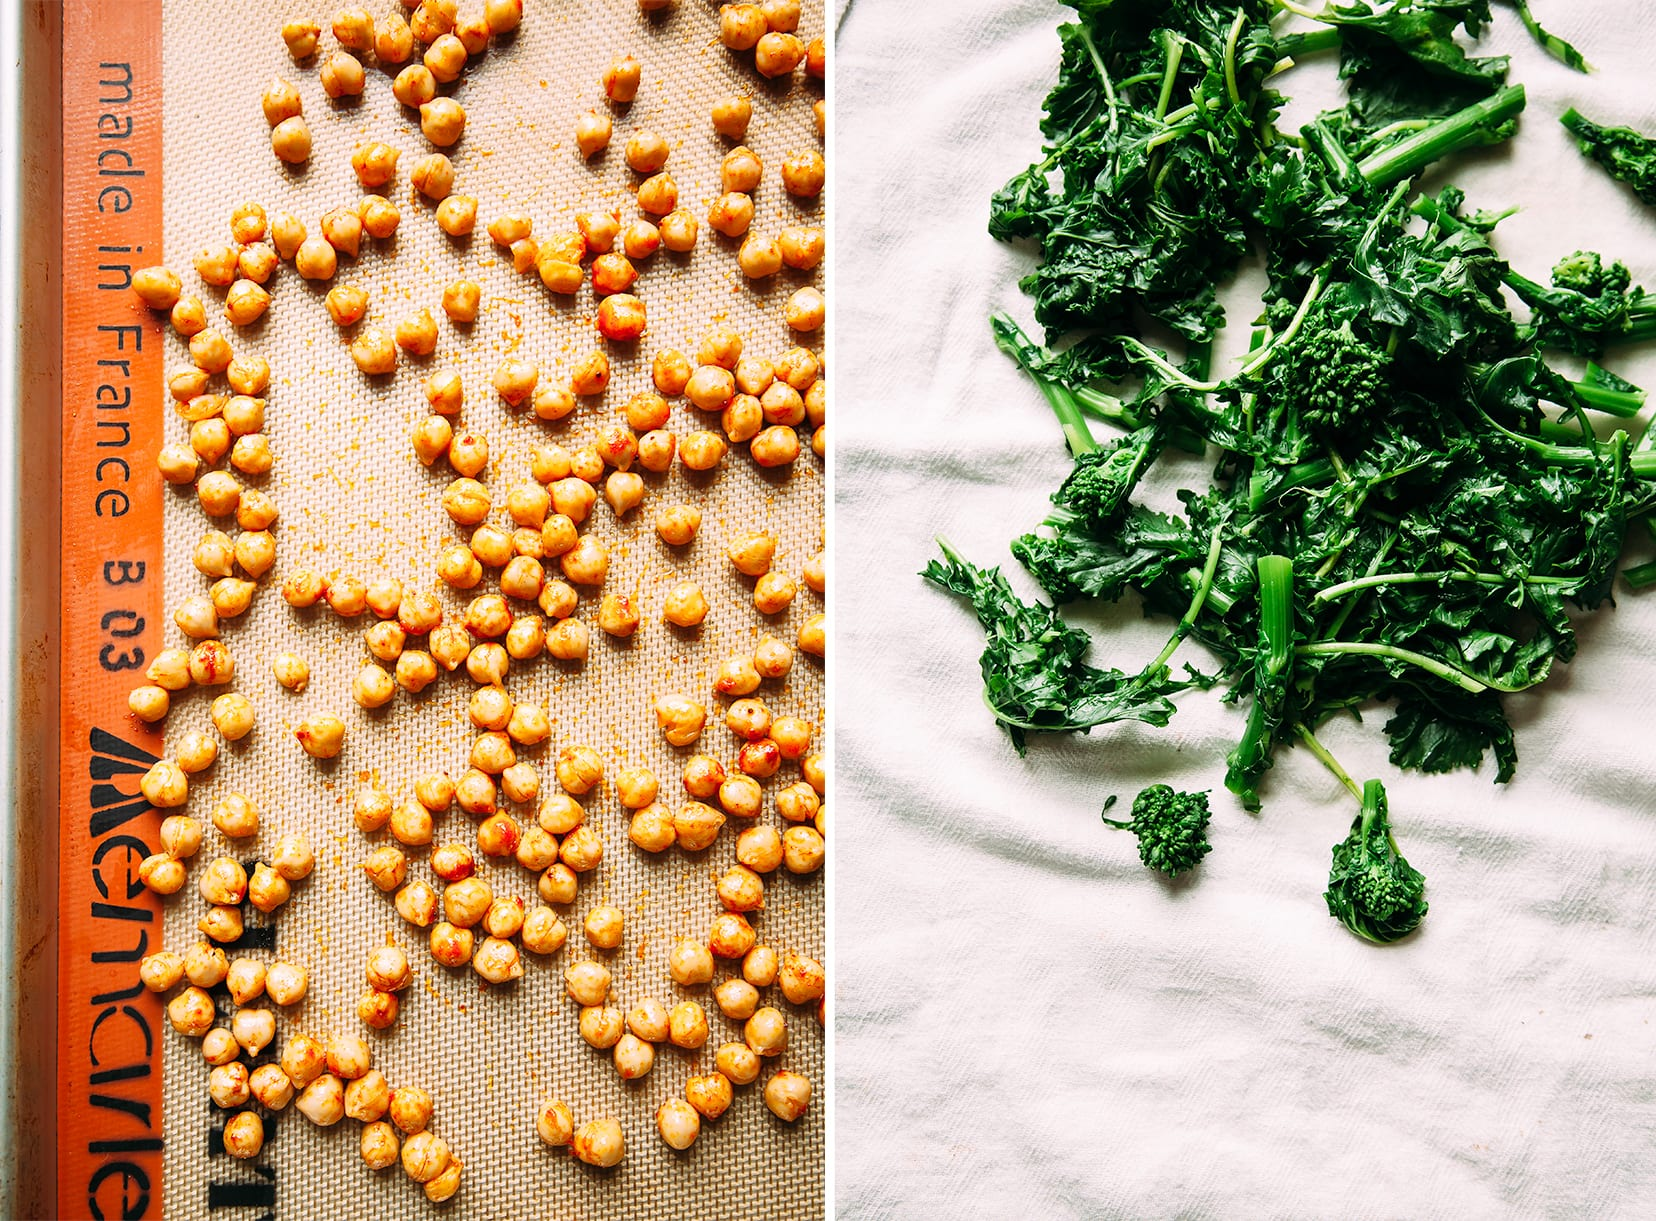 Two images show chickpeas on a baking sheet with spices and blanched broccoli rabe.